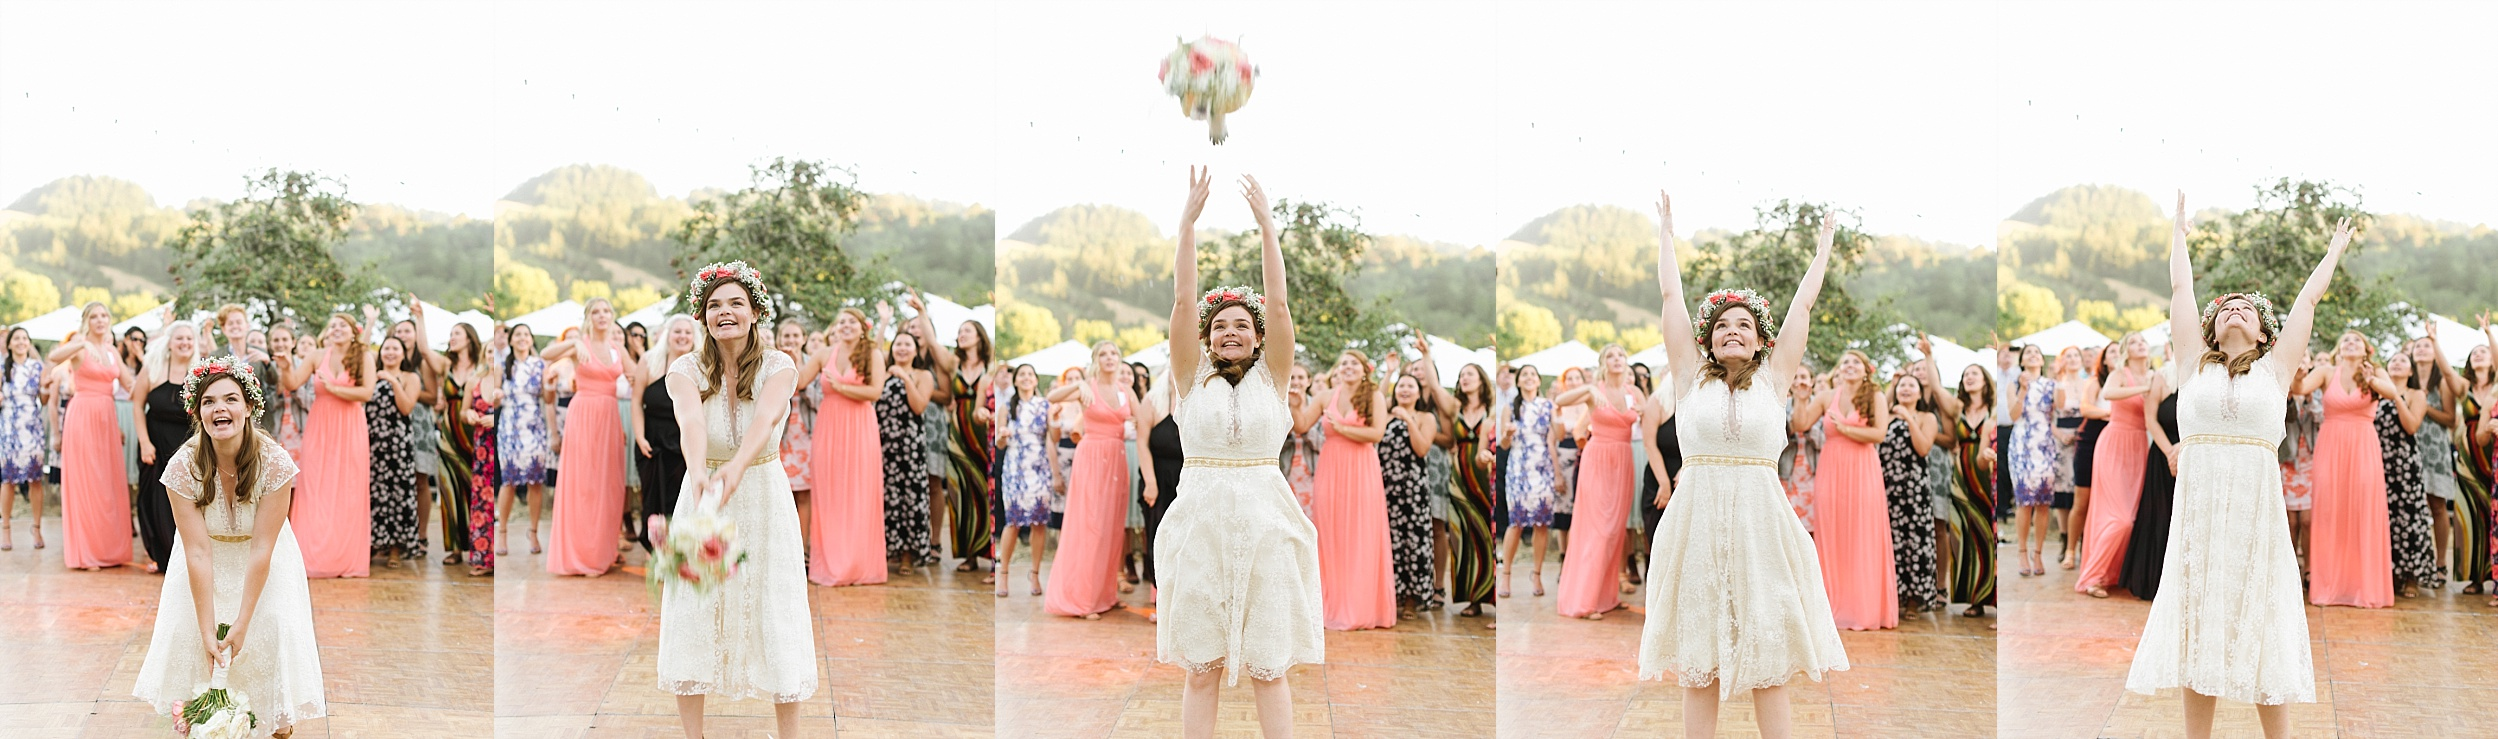 fairfax_ranch_wedding_chelsea_dier_photography_0044.jpg